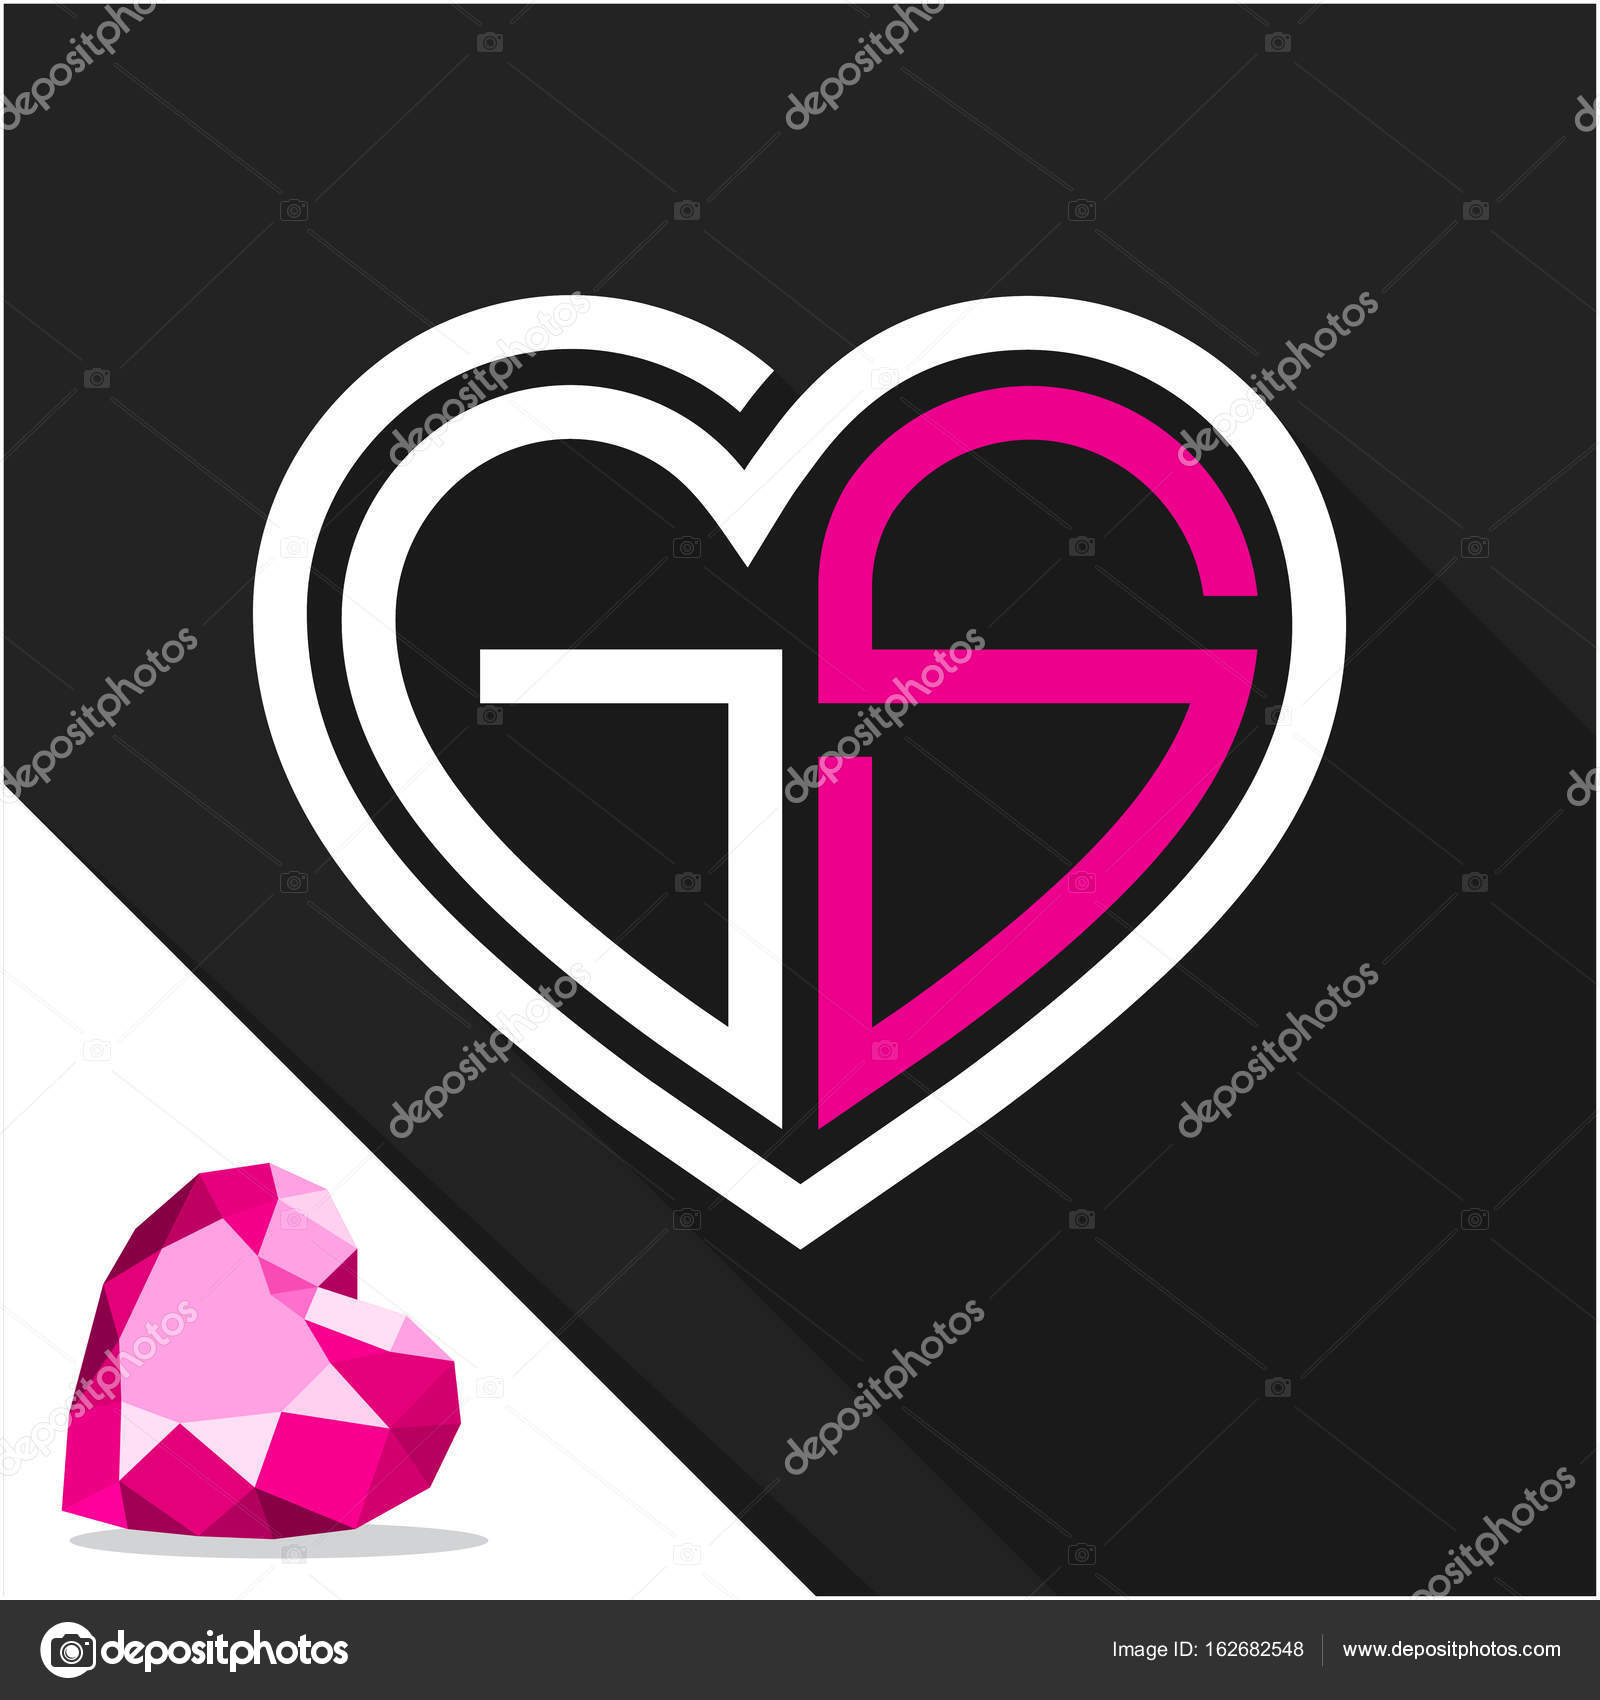 Images G Alphabet In Heart Icon Logo Heart Shape With